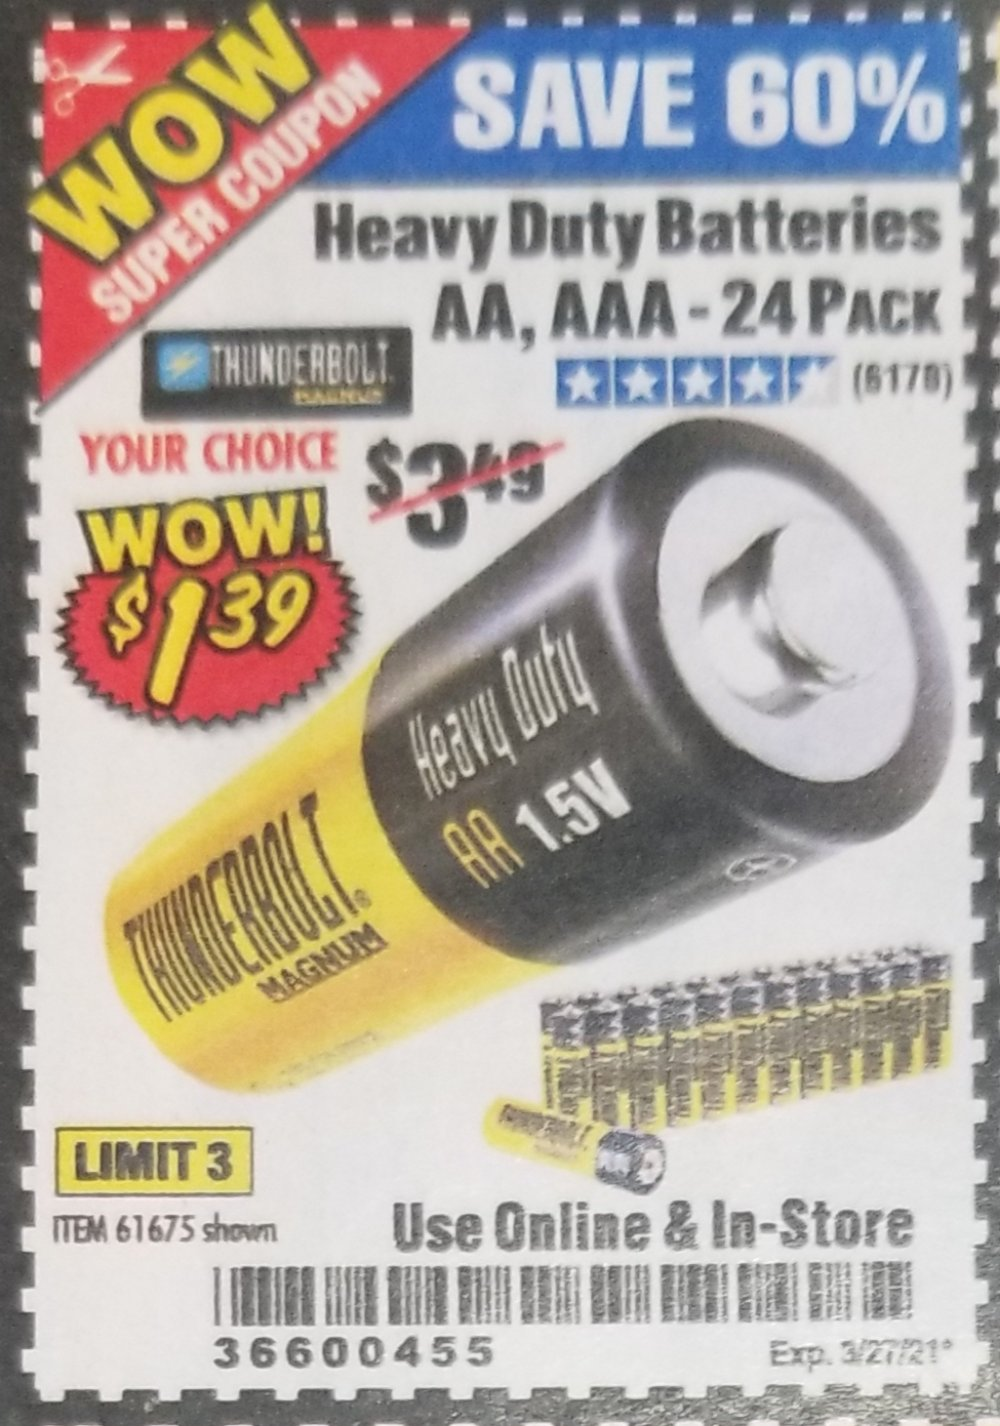 Harbor Freight Tools Coupons, Harbor Freight Coupon, HF Coupons-24 Pack Heavy Duty Batteries